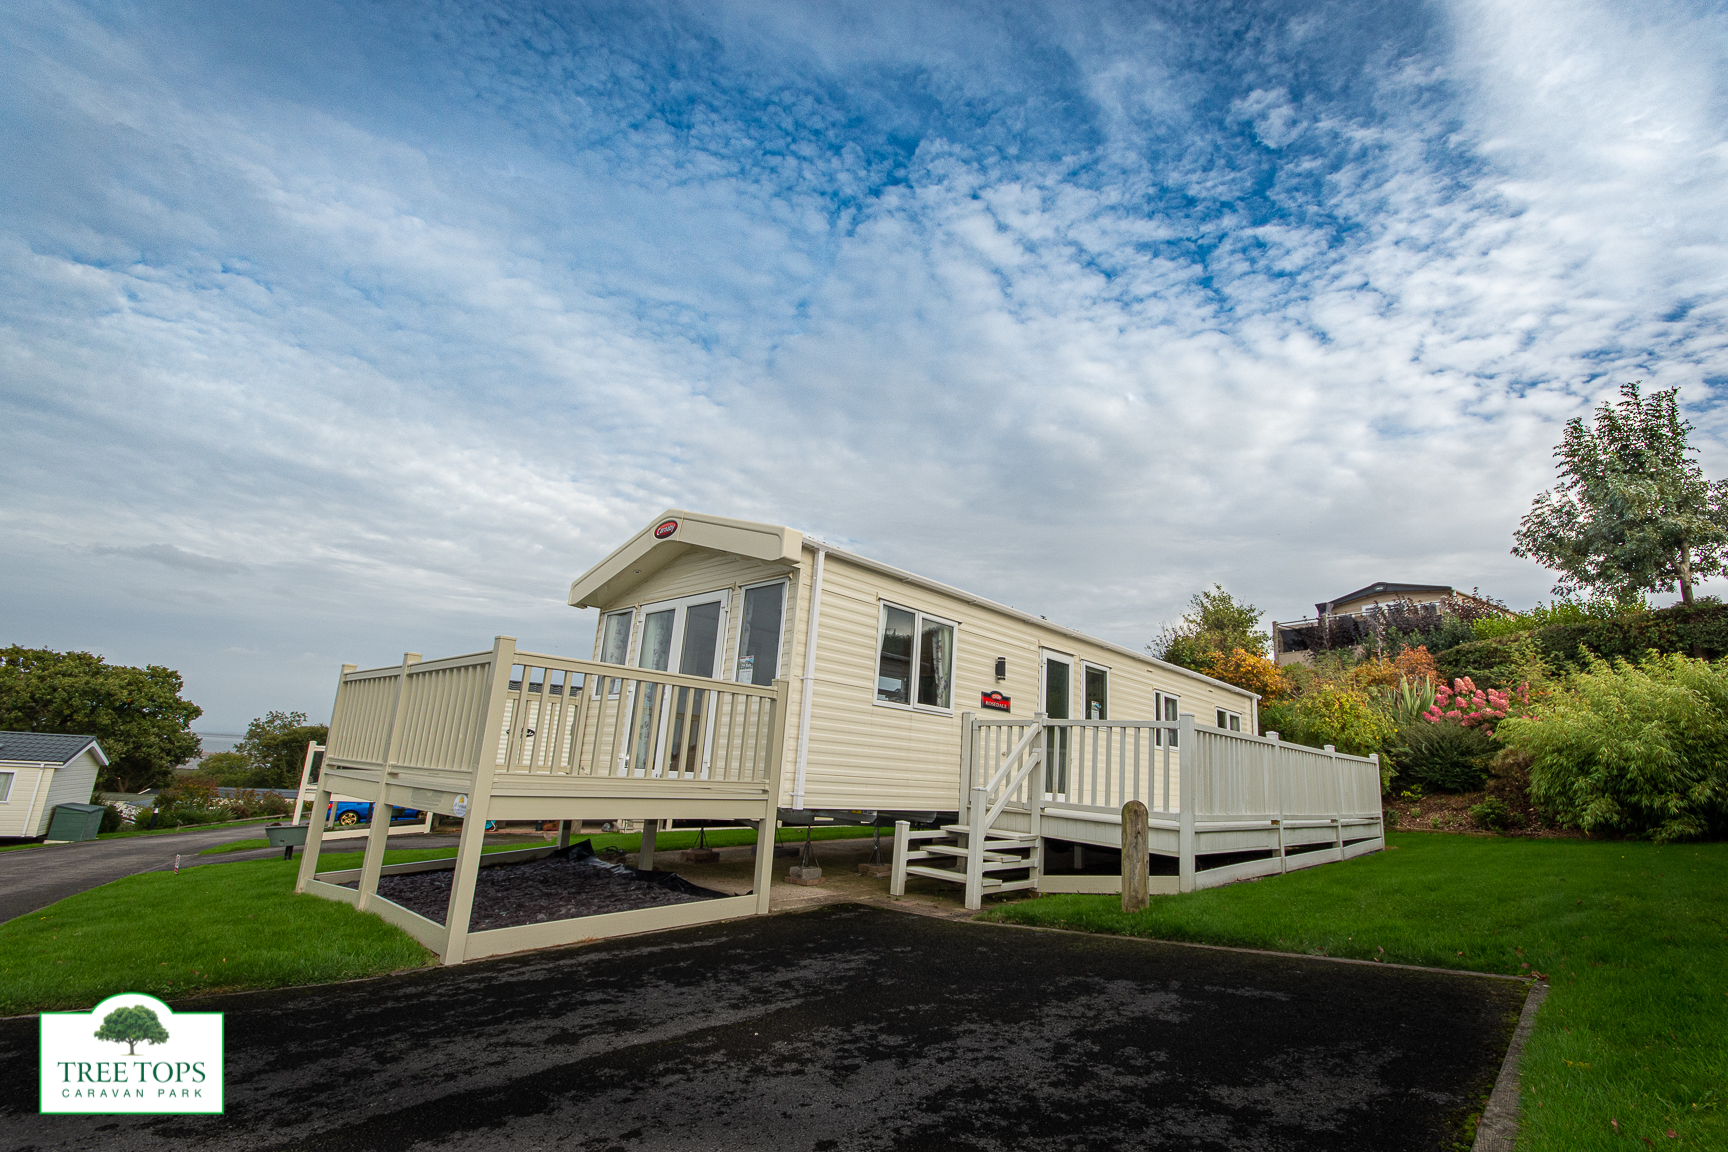 Carnaby Rosedale Caravan for Sales at Tree Tops Caravan Park